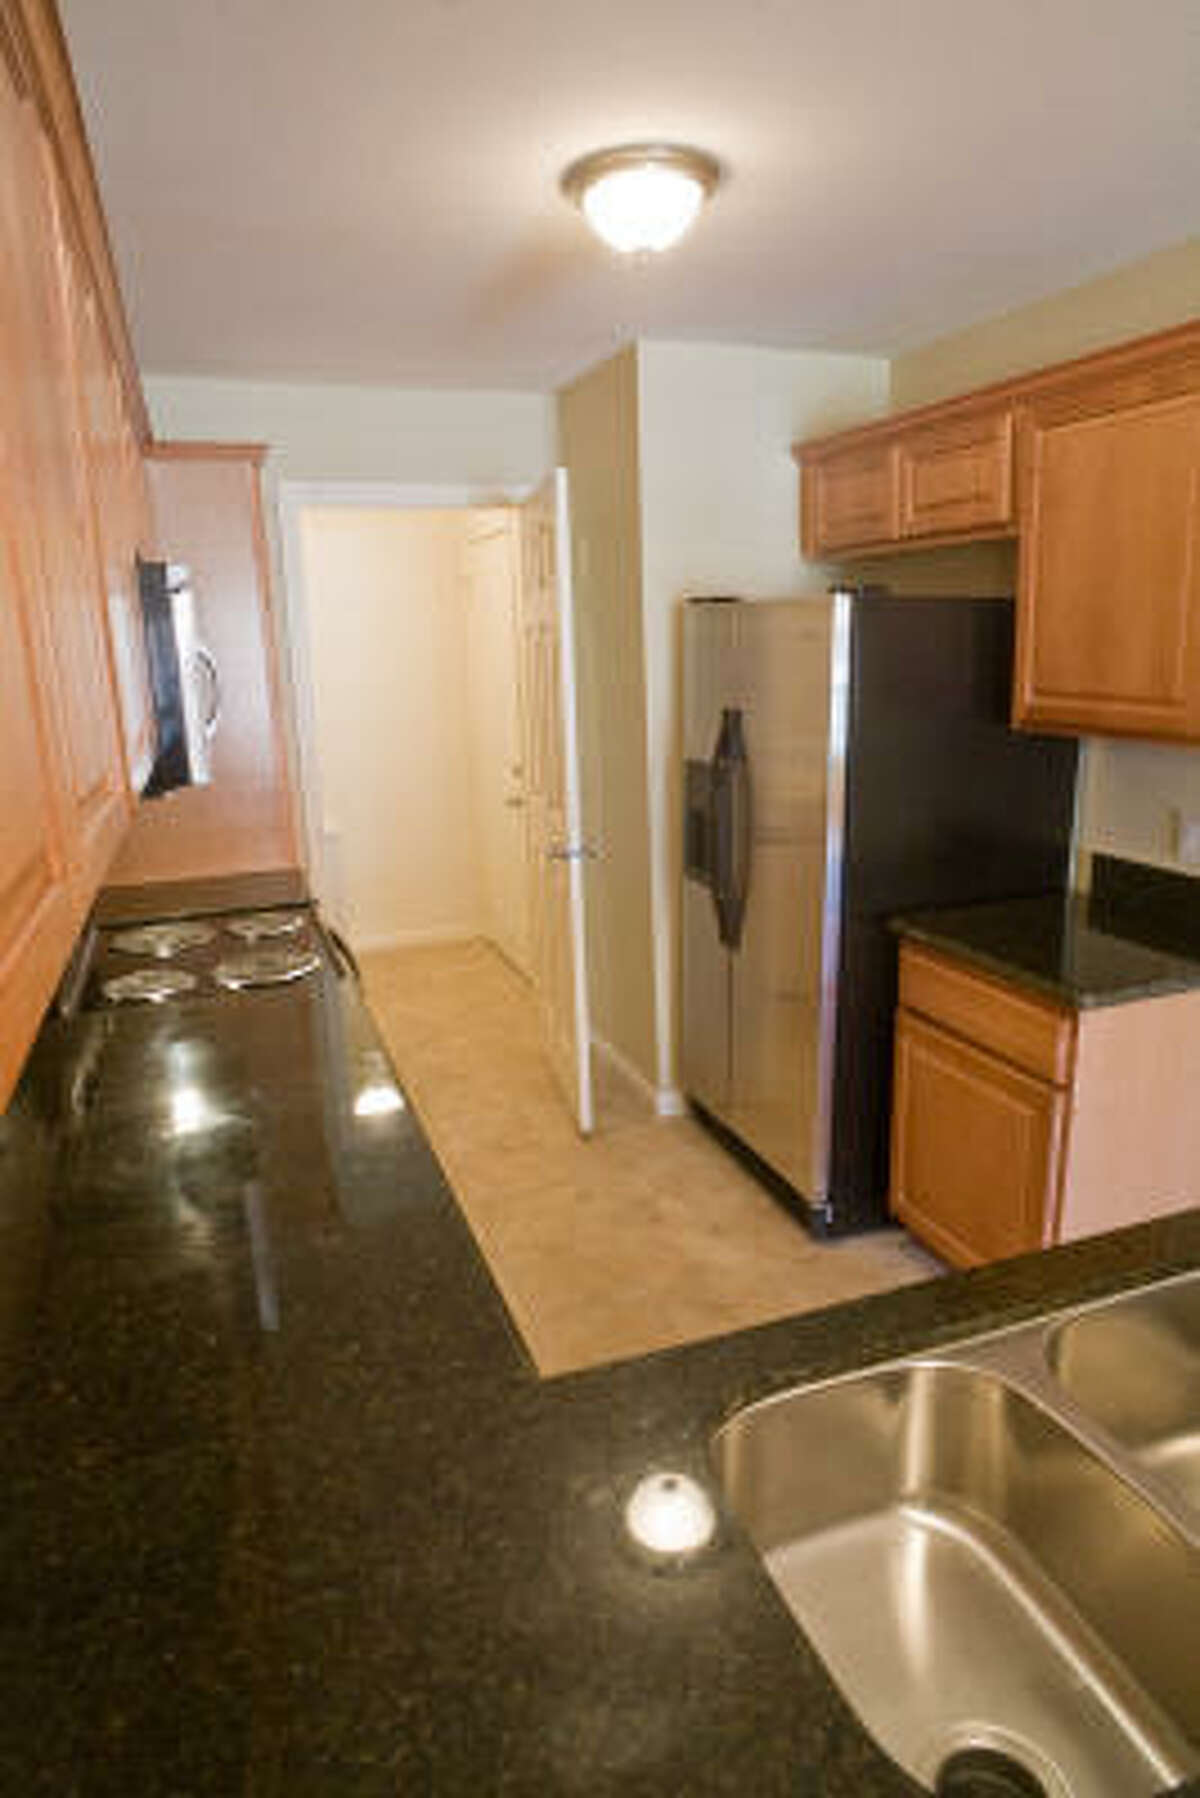 kitchen, unit 304, Townhomes of Sherwood Forest, 1520 Sherwood Forest Drive